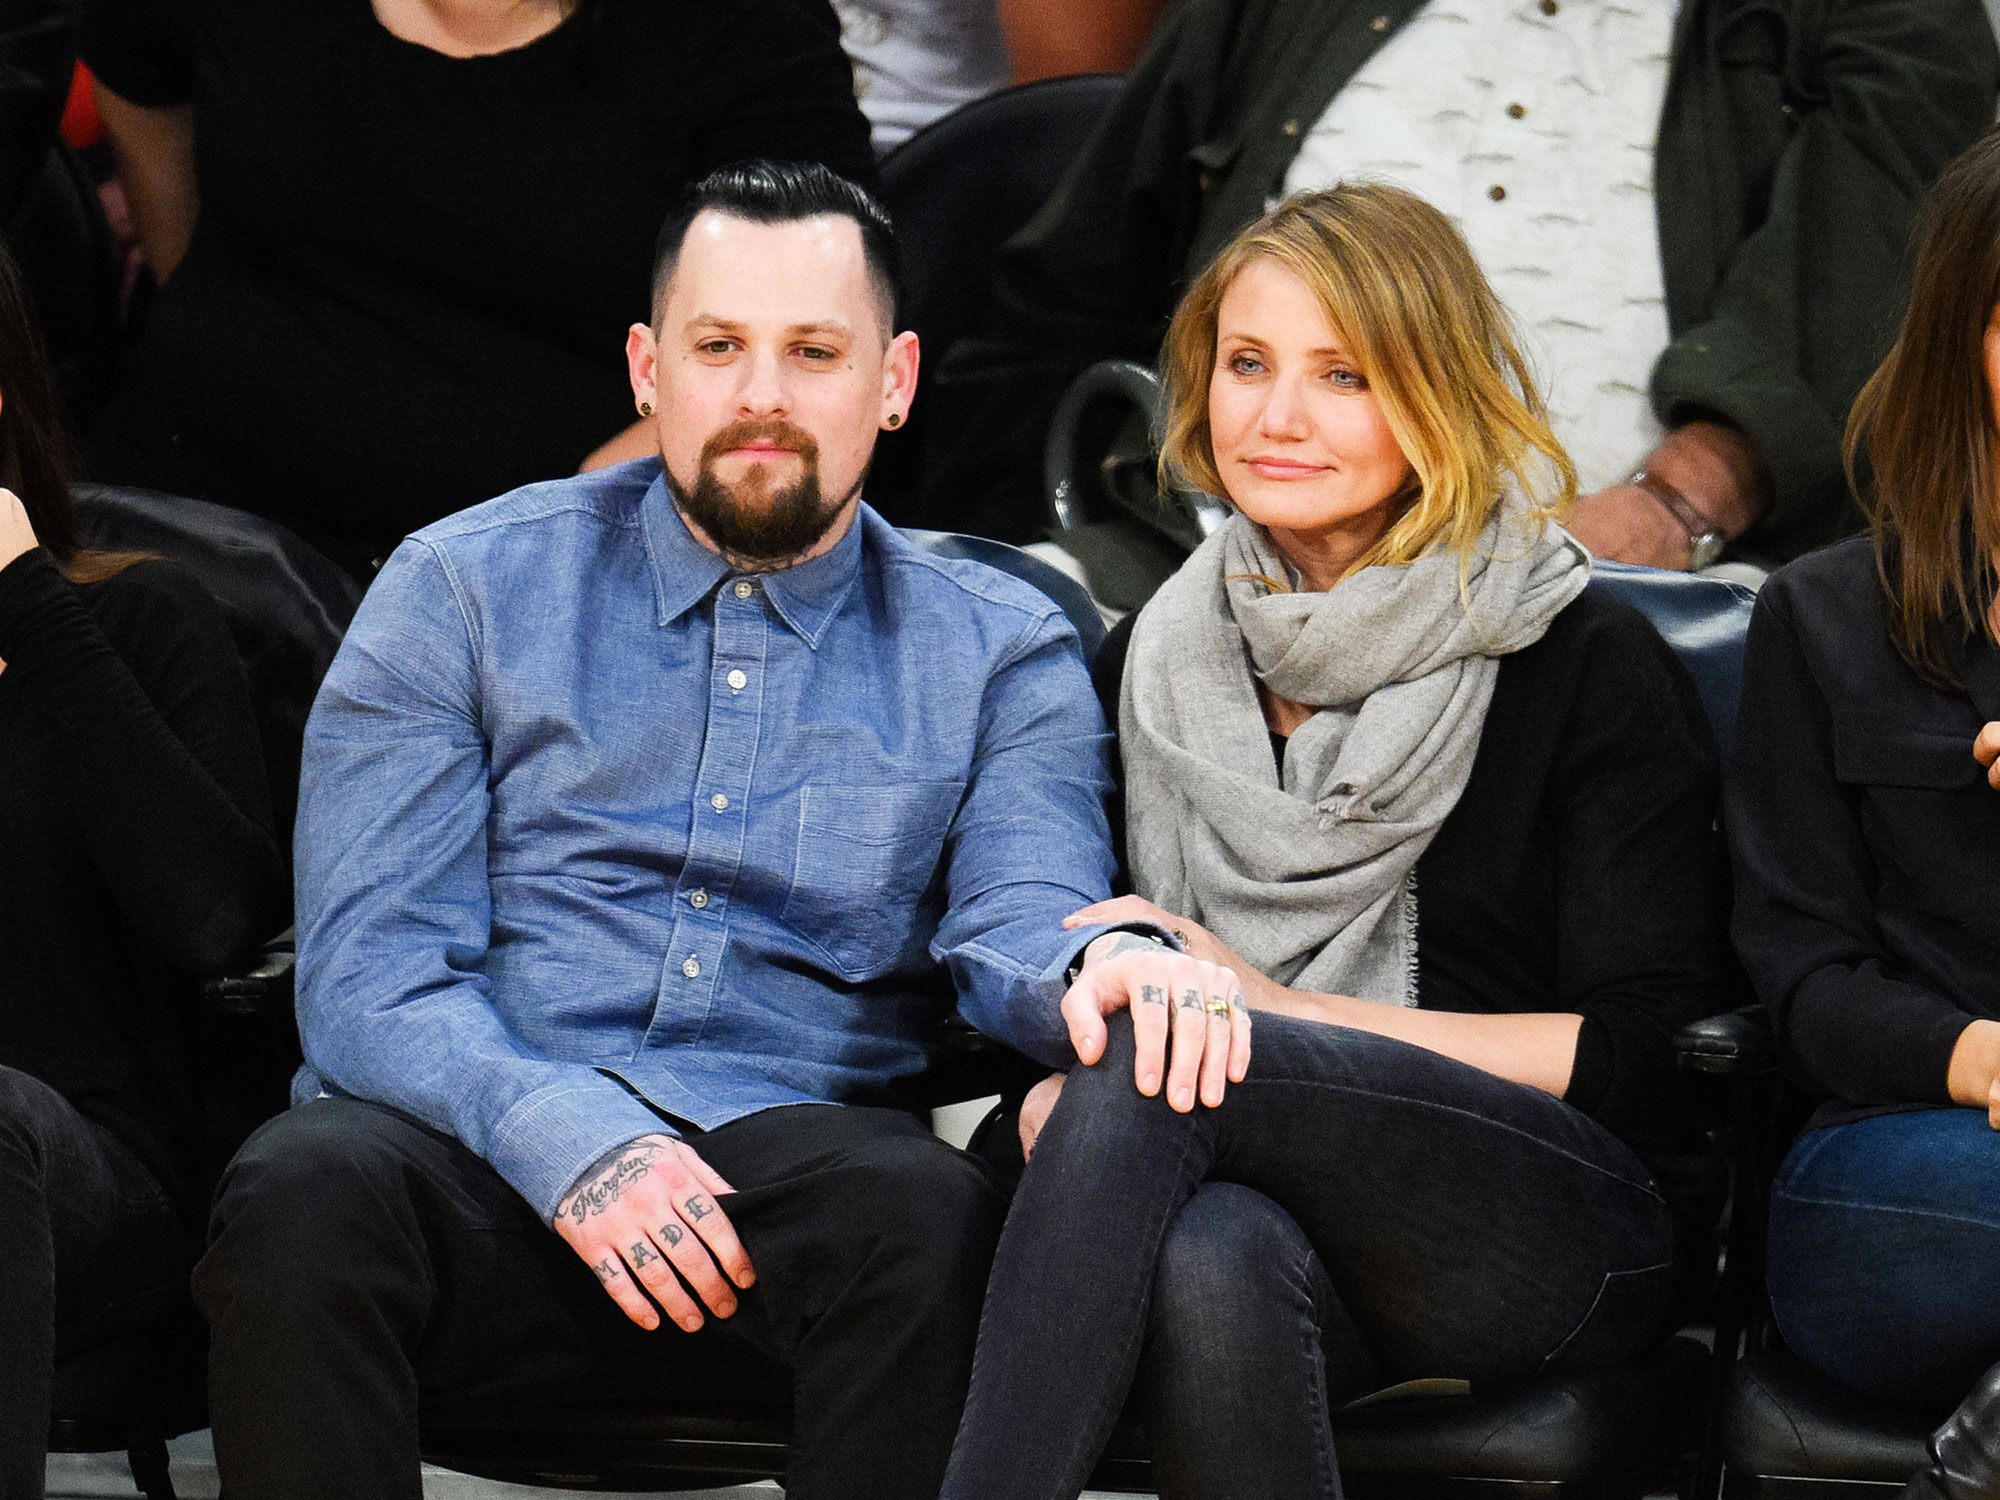 """A Timeline of Cameron Diaz and Benji Madden's Private Relationship - Multiple sources confirmed to Us in December 2014 that the Charlie's Angels actress and the rocker were engaged after seven months together . A source told Us at the time, """"Everyone thinks it's wild but are so happy for them. Benji always tends to fall in love easily, but this time it's for real and he landed a great girl. They obviously both make each other incredibly happy and there's nothing better than that."""""""